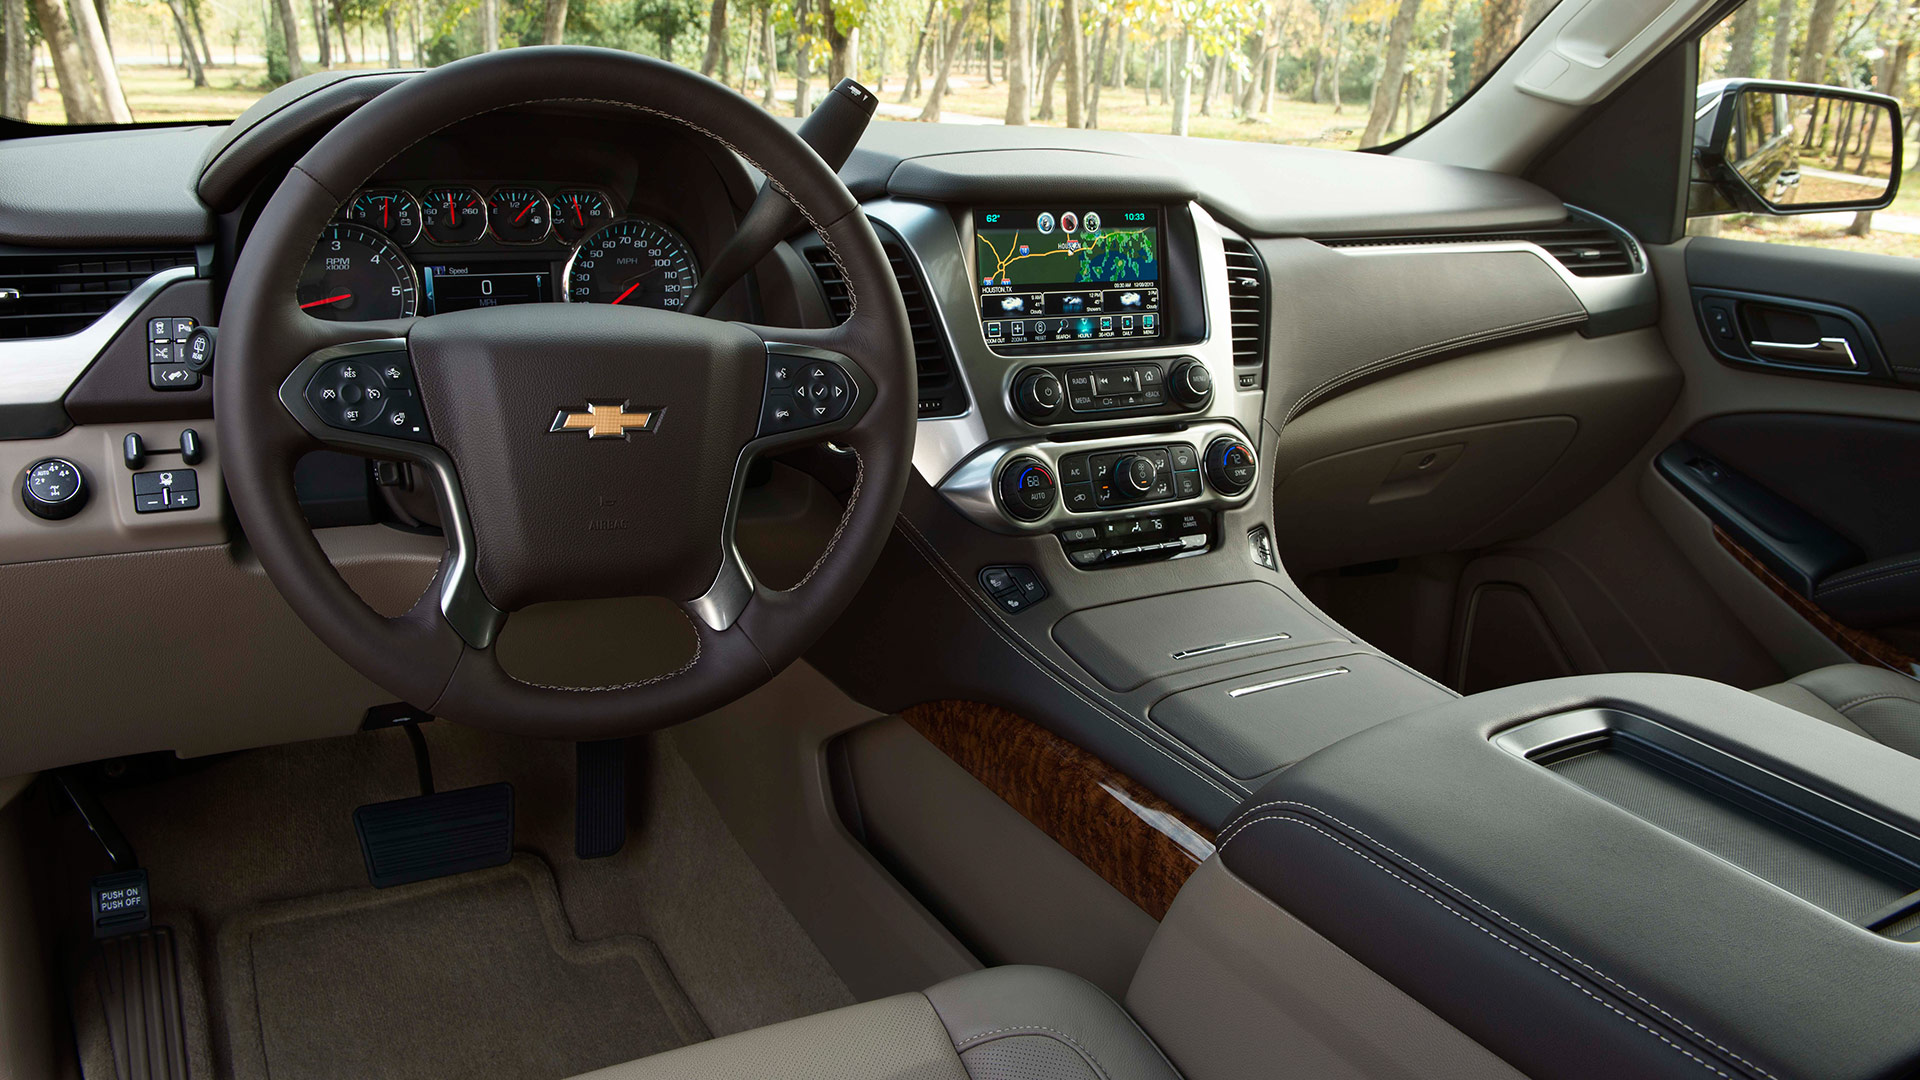 2015 Chevrolet Suburban Interior Head Unit (Photo 31 of 33)